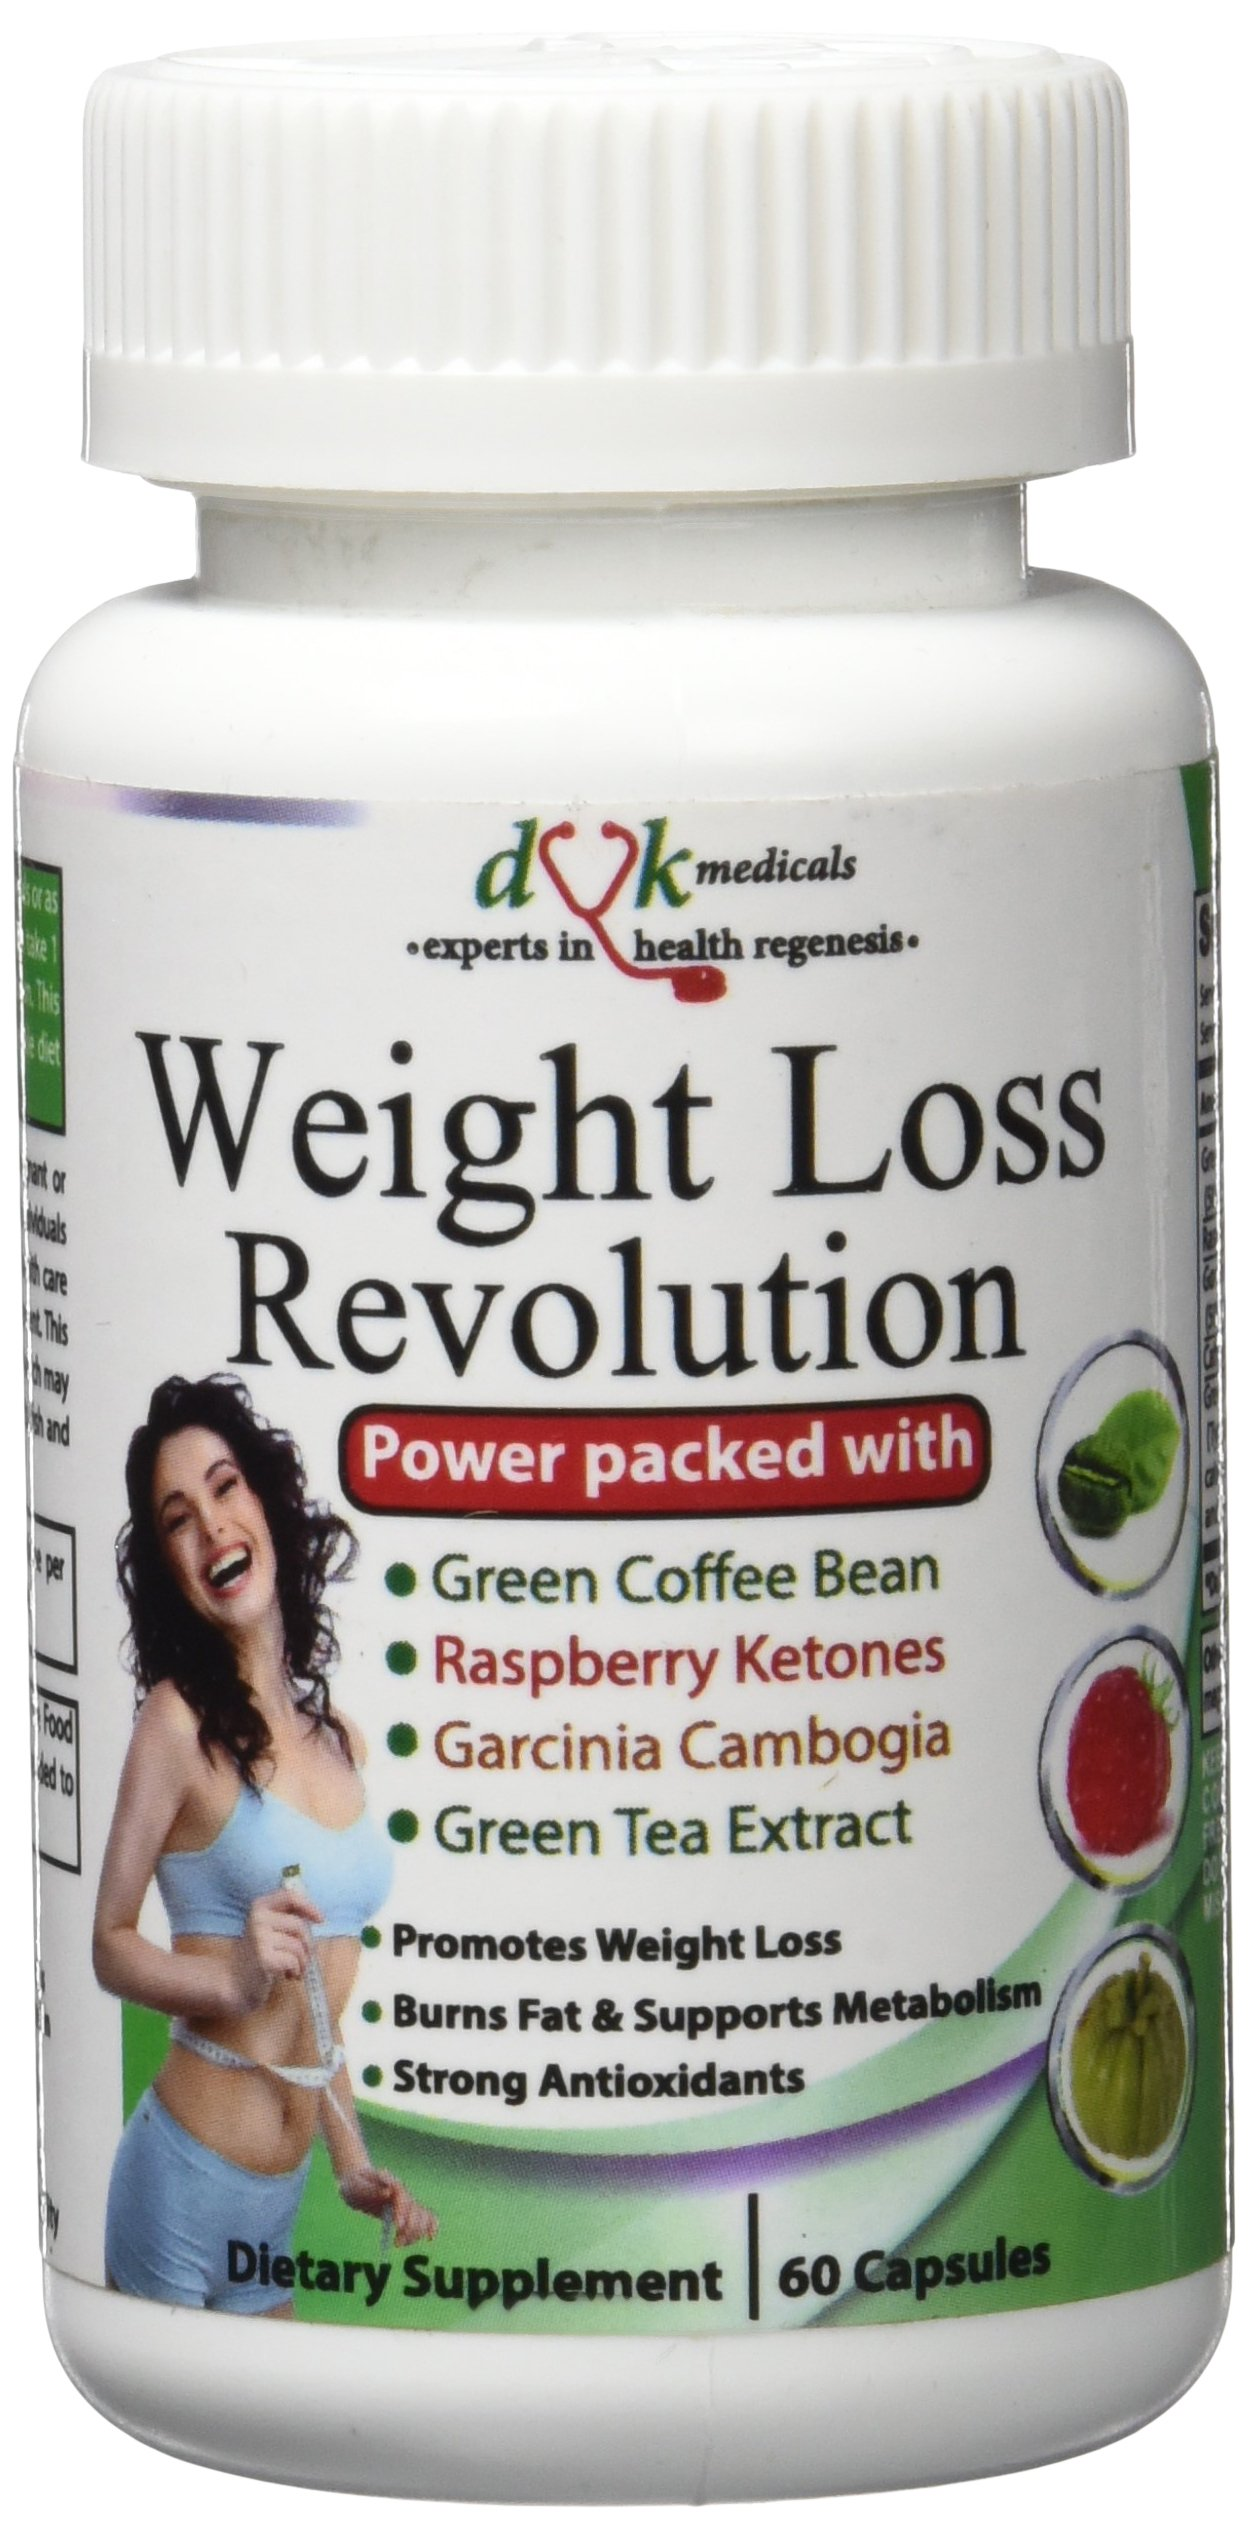 Fda weight loss picture 2